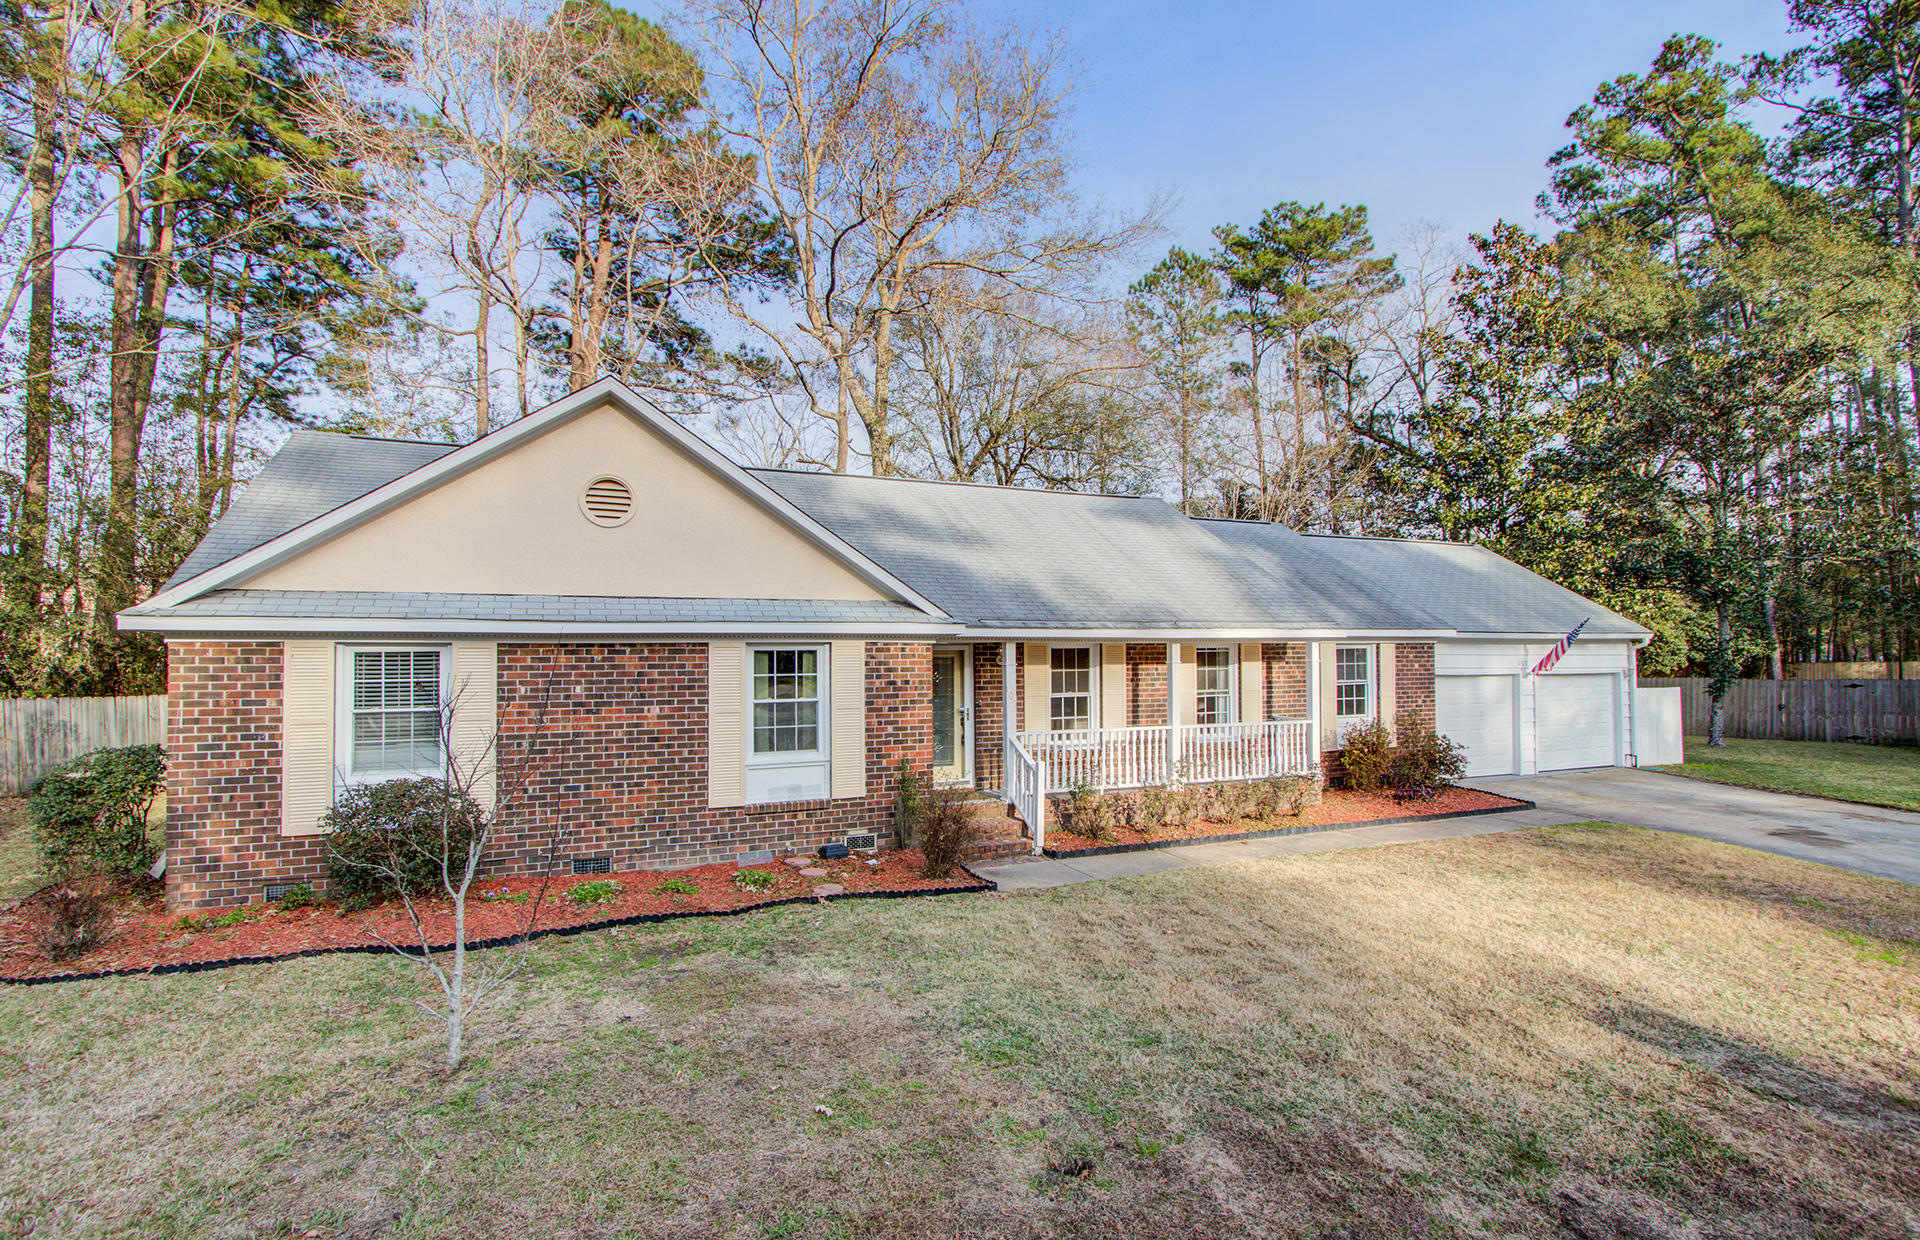 Kings Grant Homes For Sale - 107 Millbrook, Summerville, SC - 3